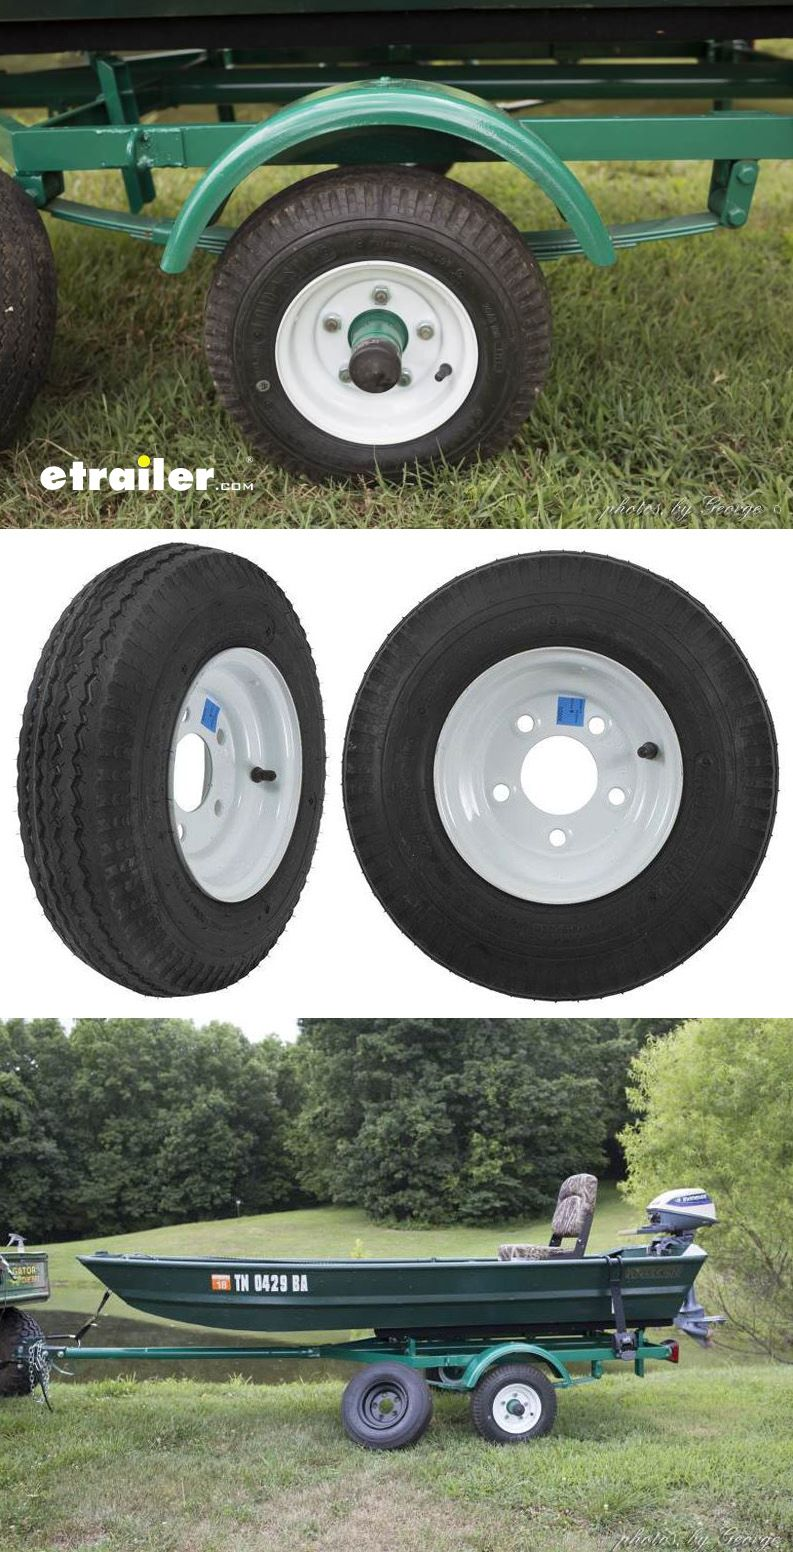 Kenda 480 400 8 Bias Trailer Tire With White Wheel 5 On 4 1 2 Boat Wiring Harness Straps Have A Small These Tires Are Just Right Great Price Look Awesome And Work Even Better